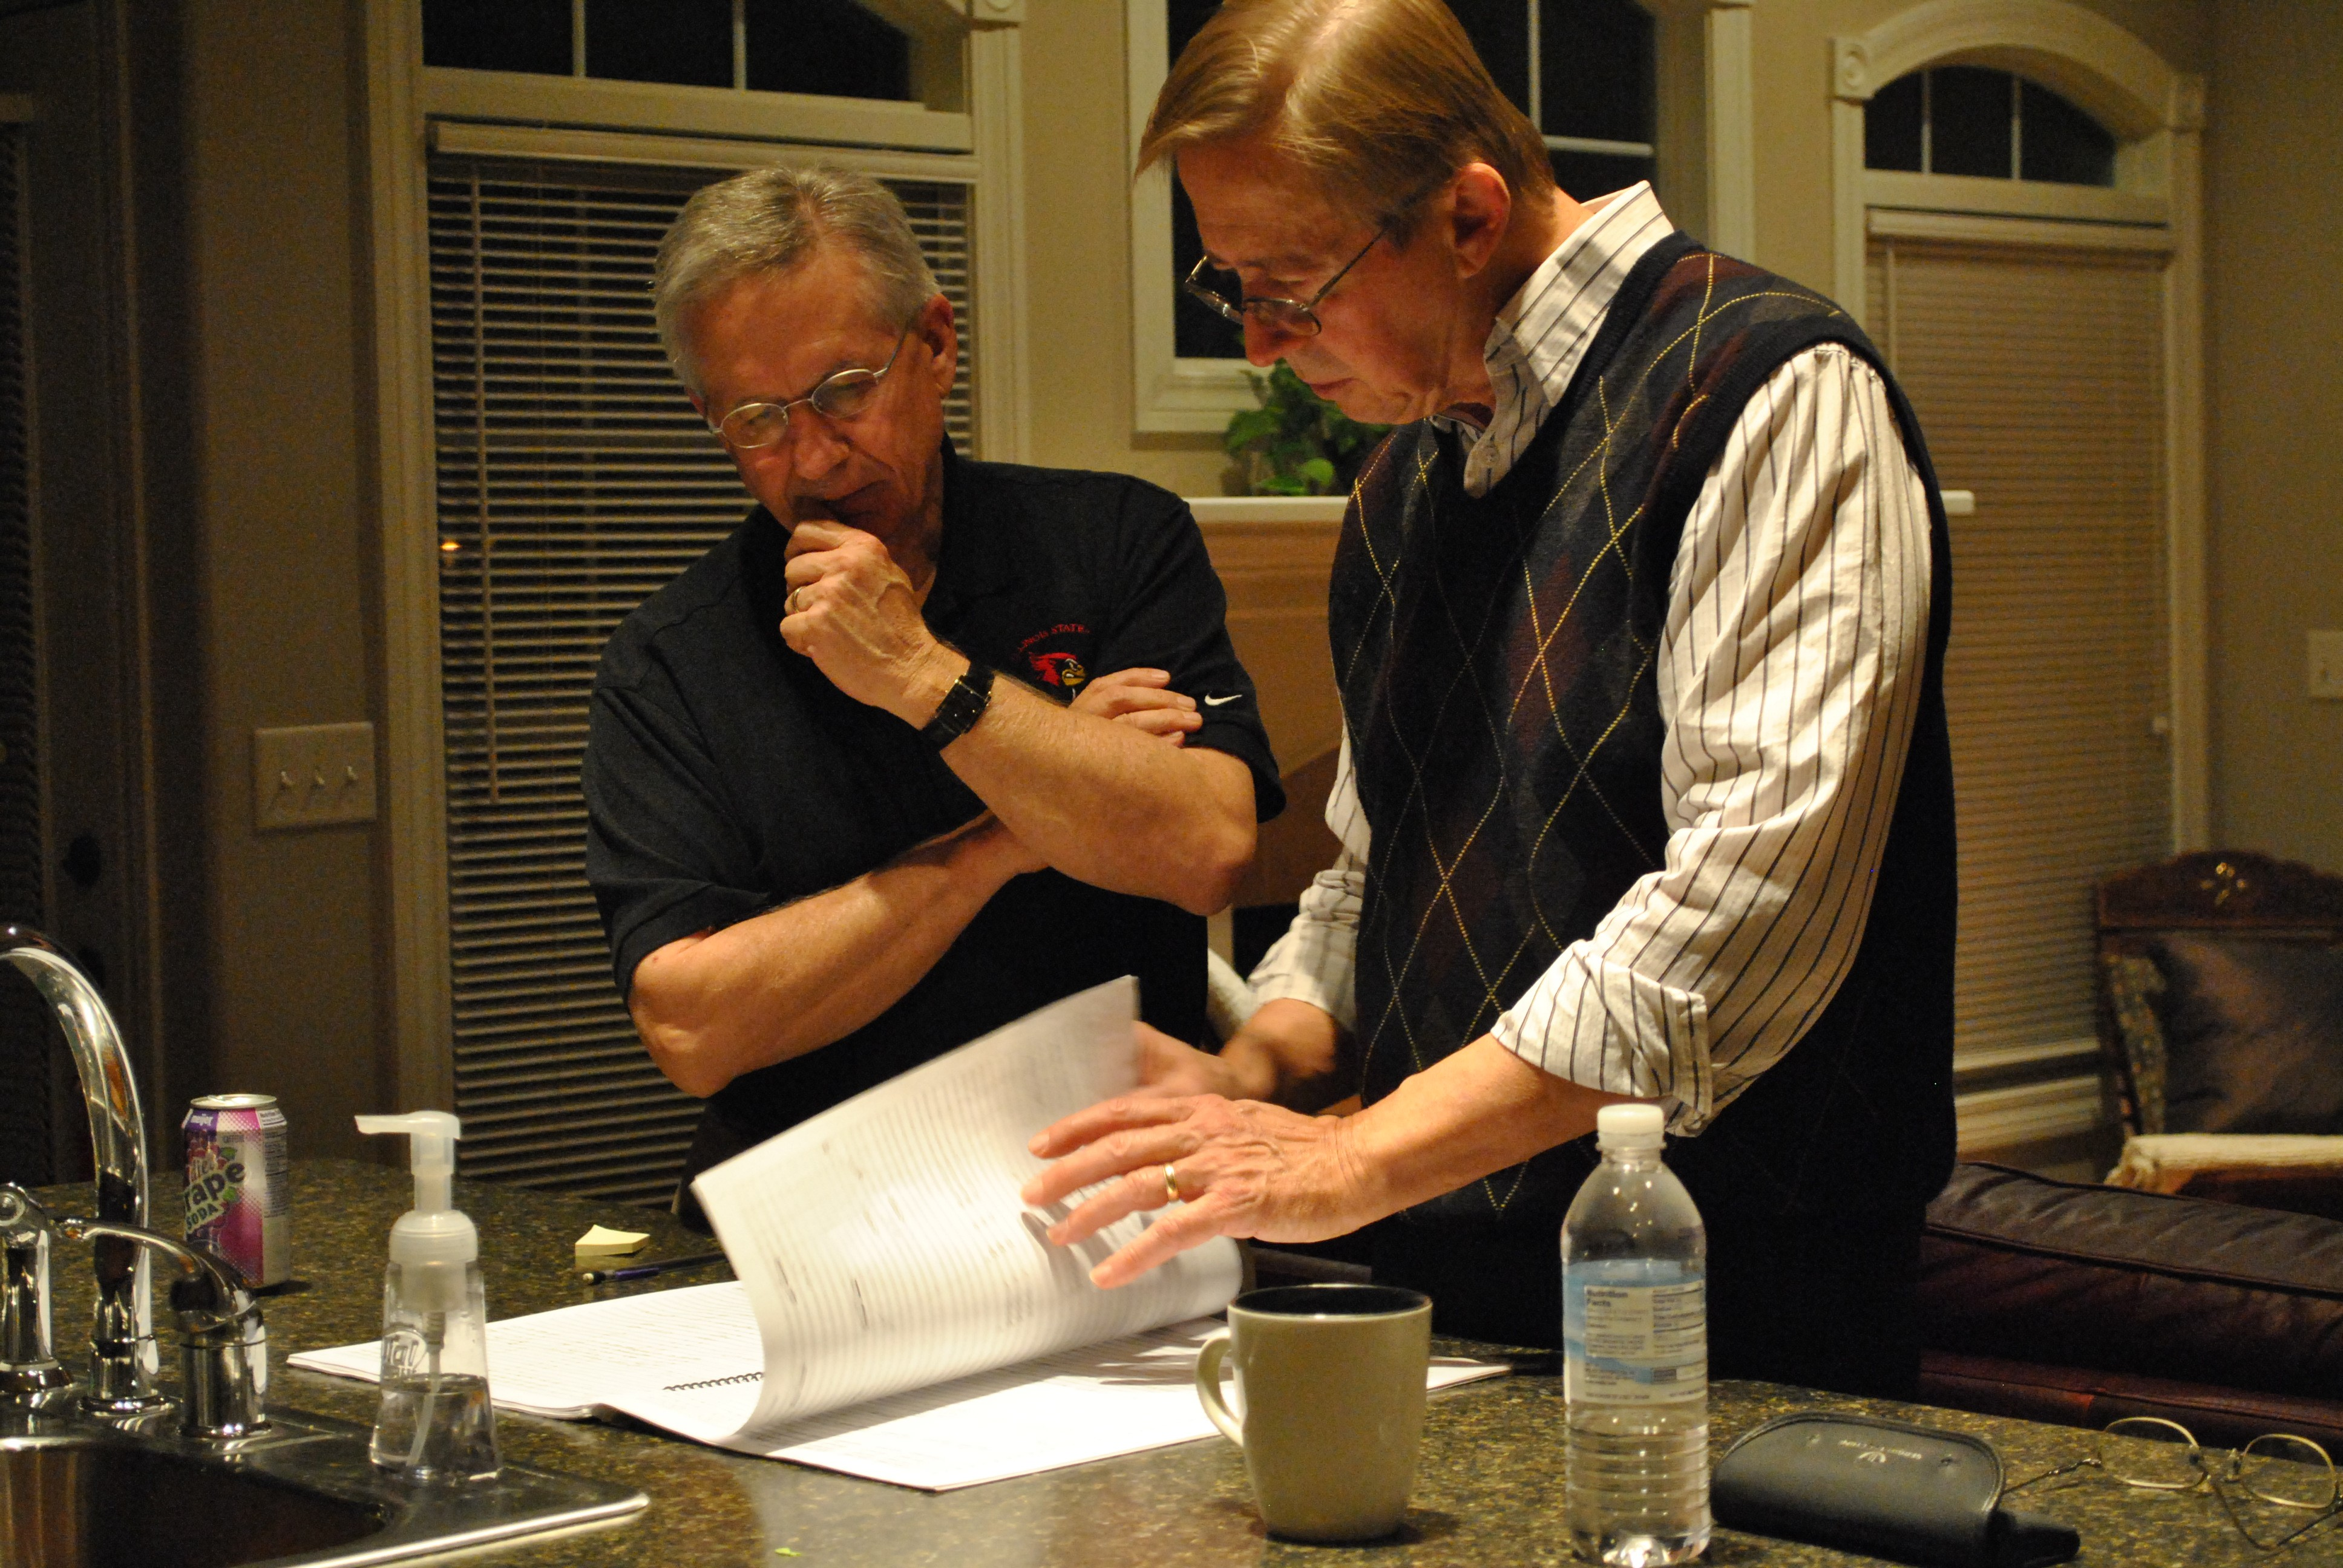 Stephen K. Steele and David Maslanka looking through one of his scores near a kitchen sink.